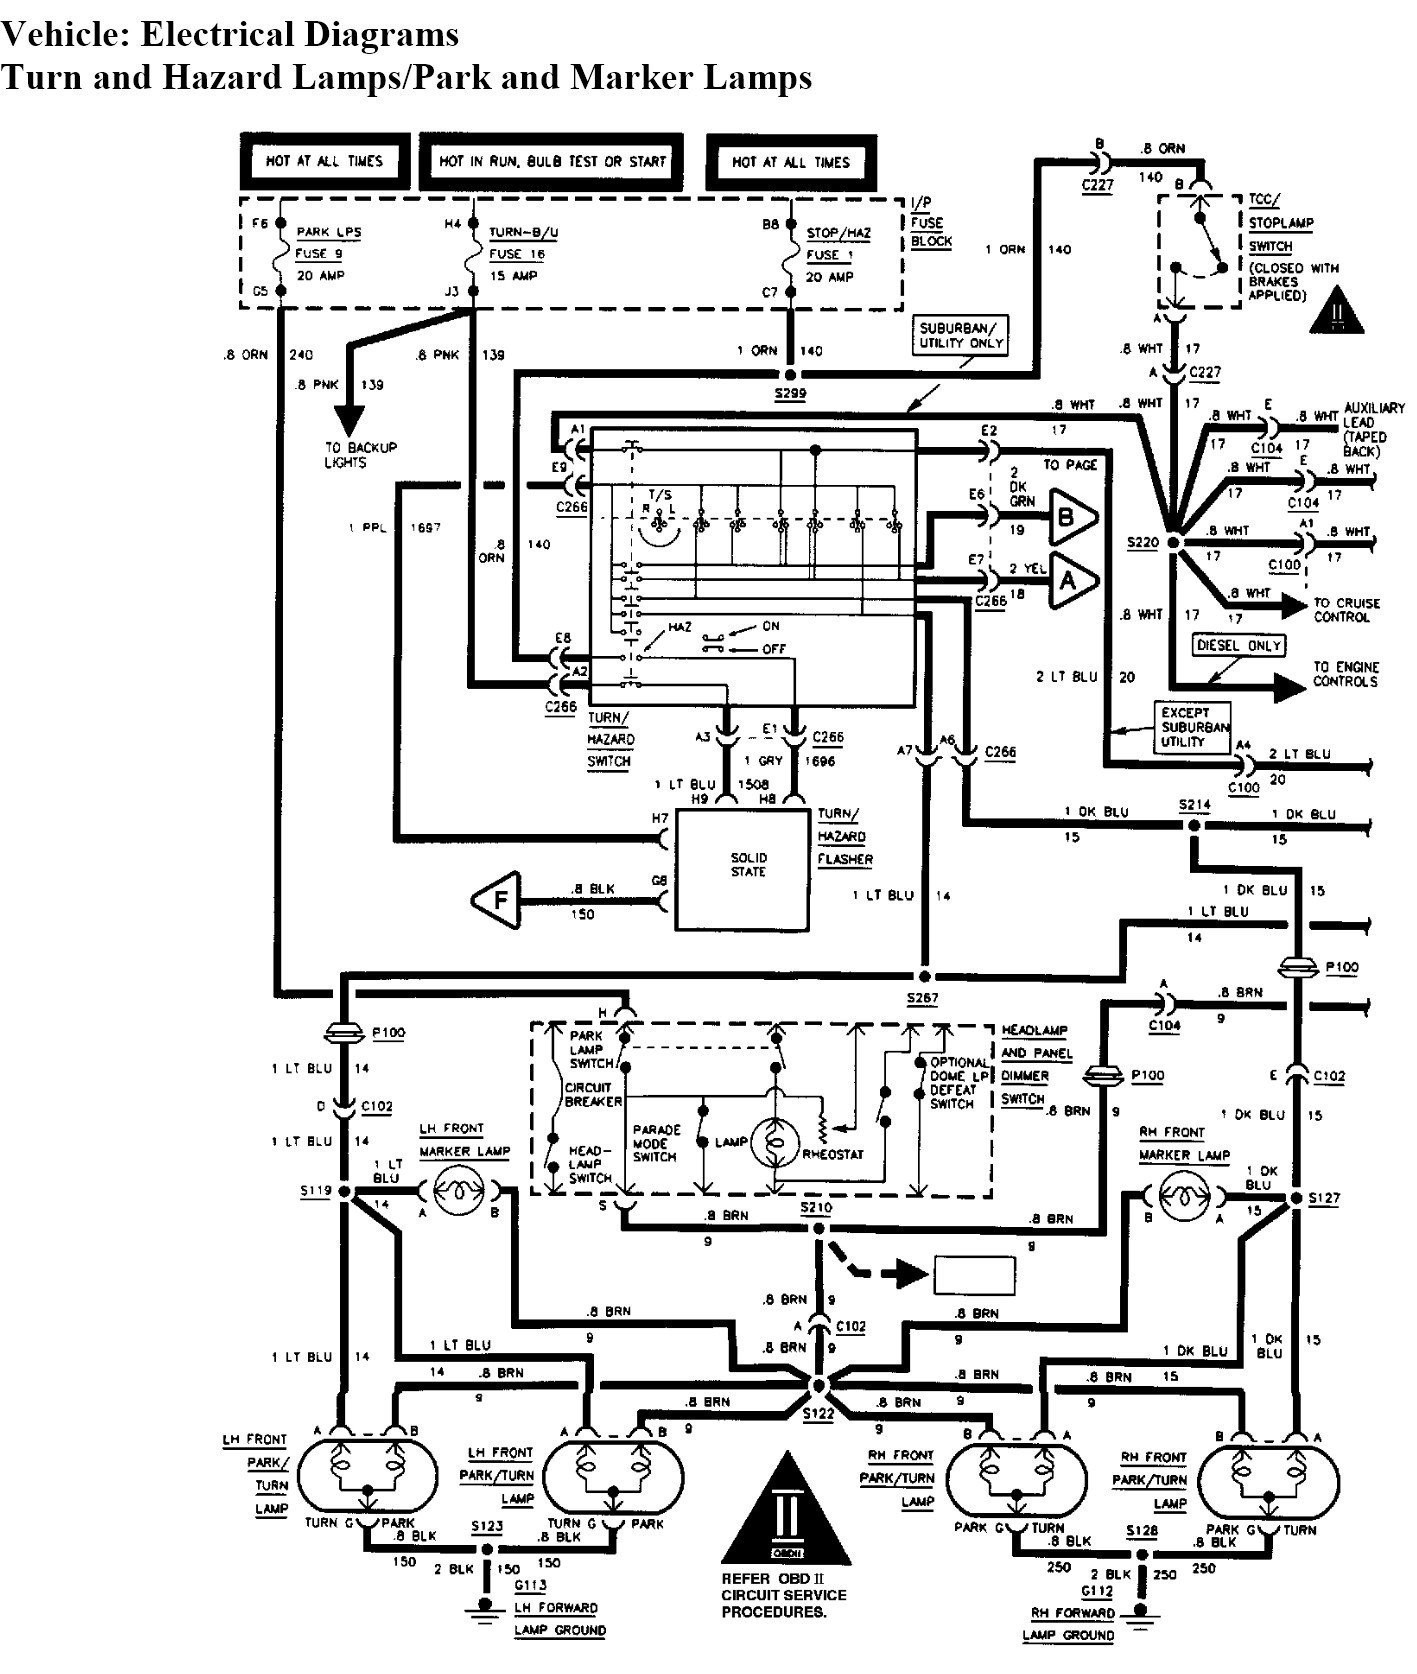 hight resolution of 98 chevy 2500 headlight switch wiring wiring diagrams bib 2002 k2500 headlight switch wiring diagram wiring